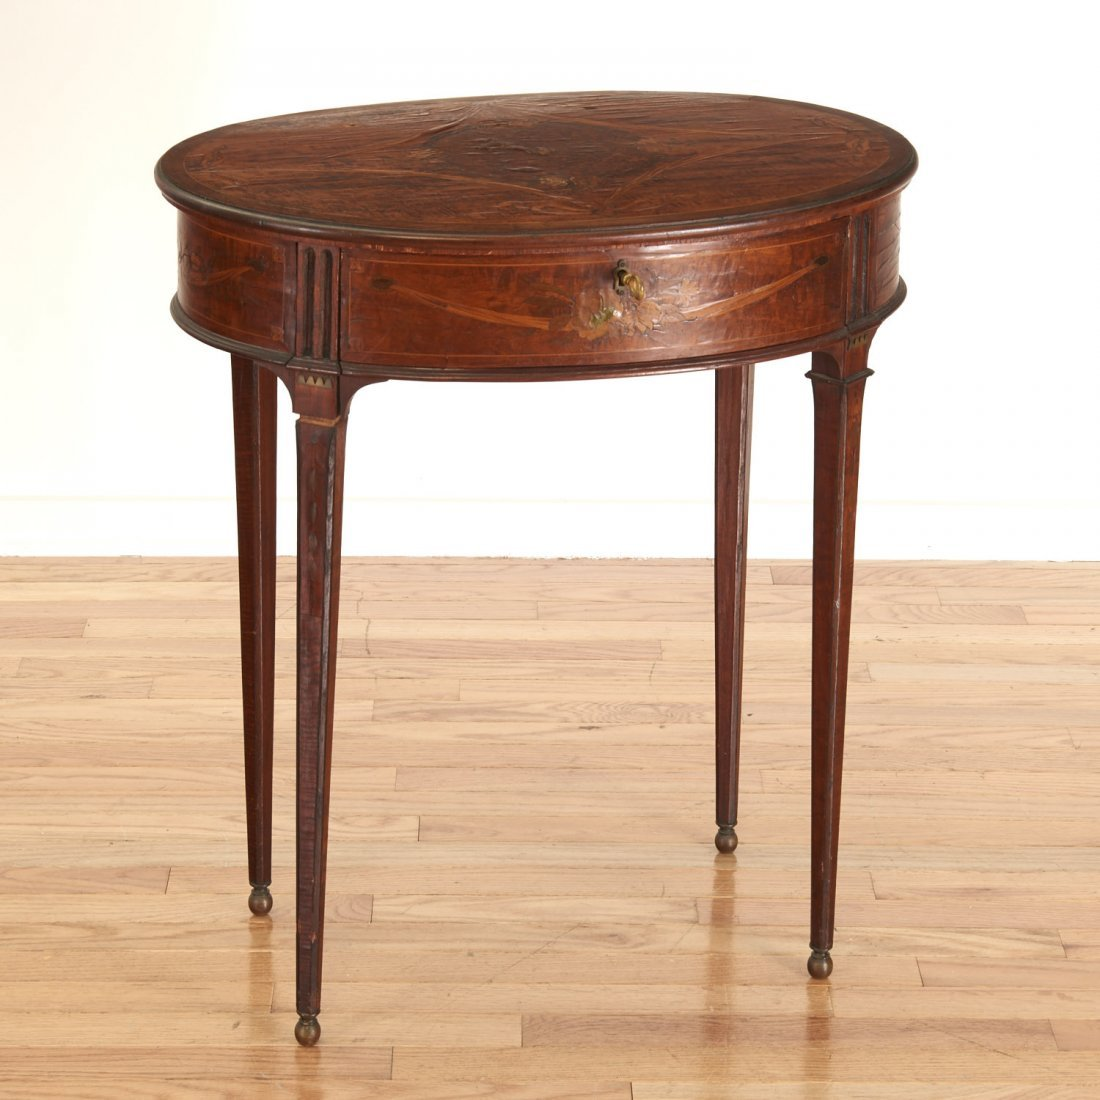 Continental Neo-Classical inlaid walnut side table